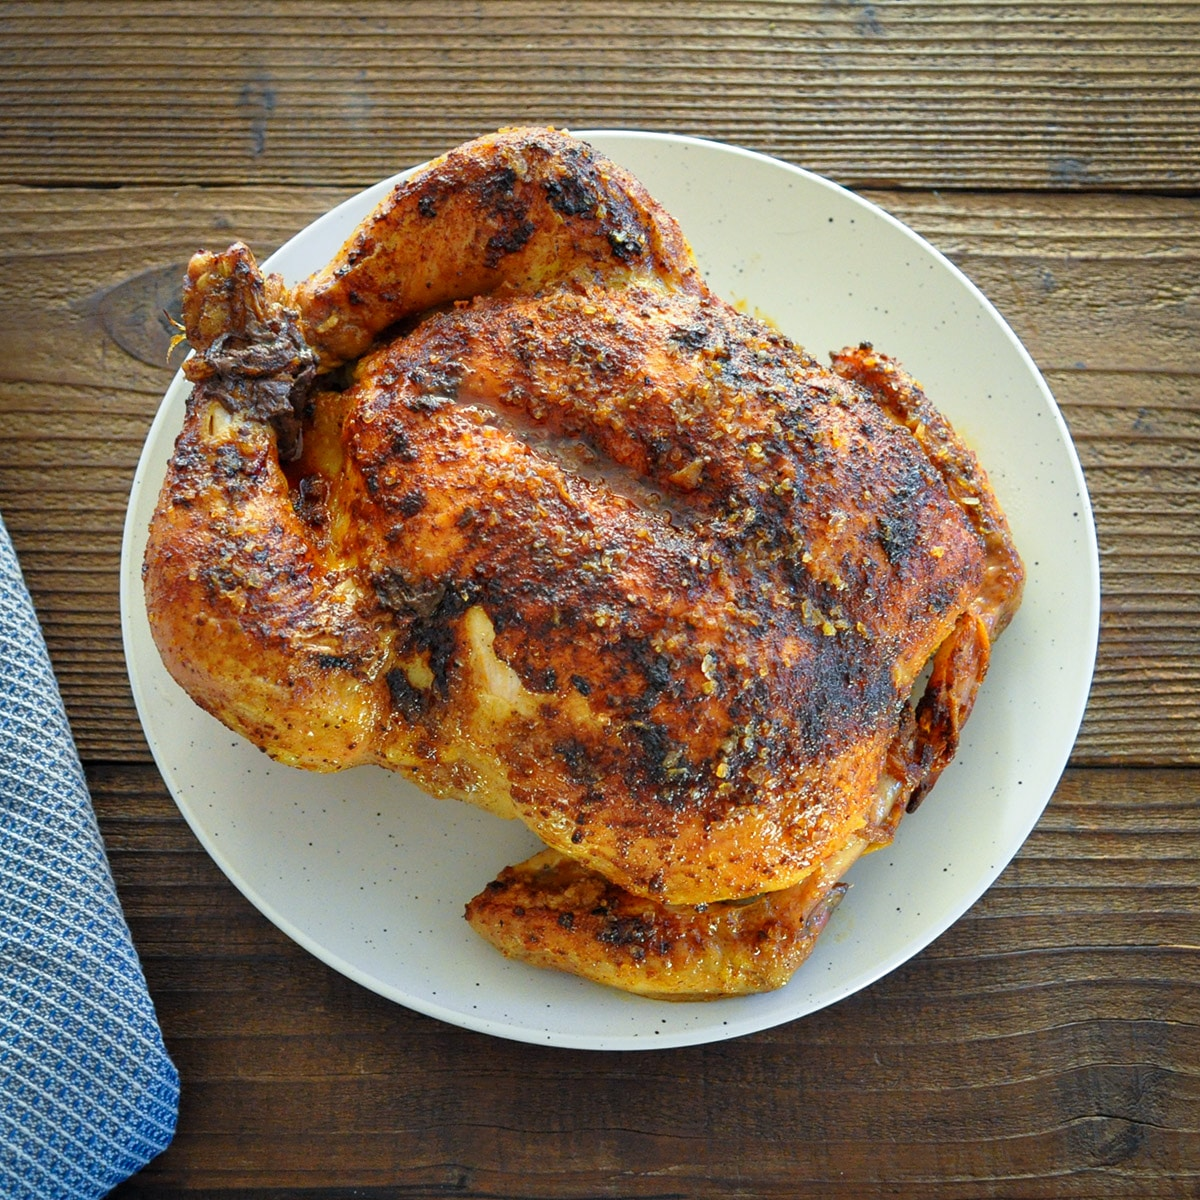 a whole roasted chicken on a white plate